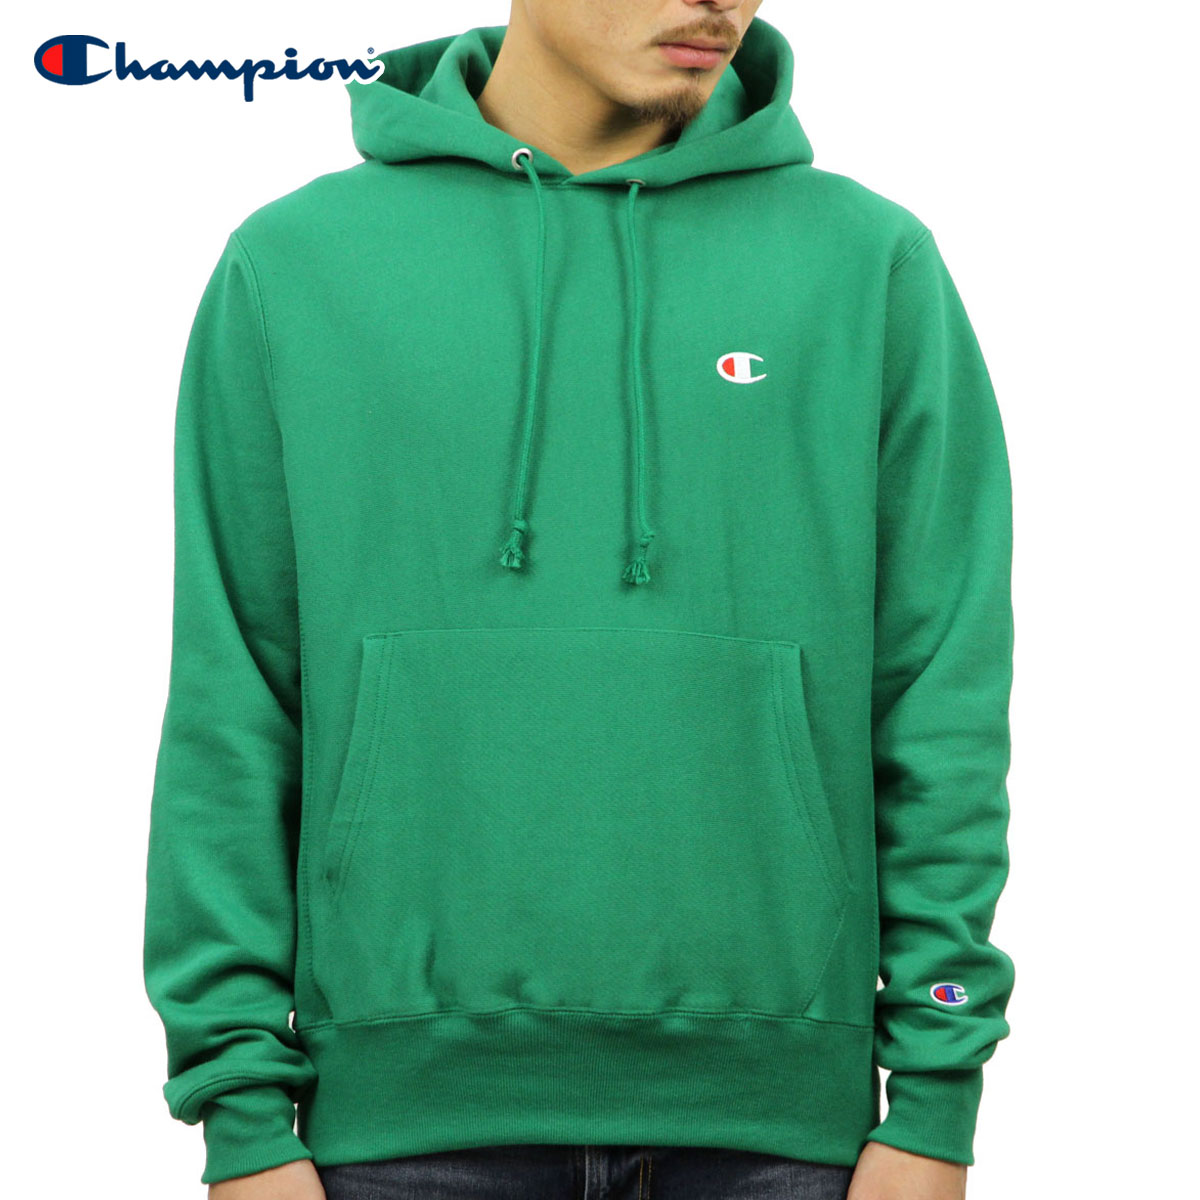 22225140c Champion CHAMPION regular article men goaf Bath Wiebe pullover parka  REVERSE WEAVE HEAVYWEIGHT 12oz PULLOVER HOODIE ...